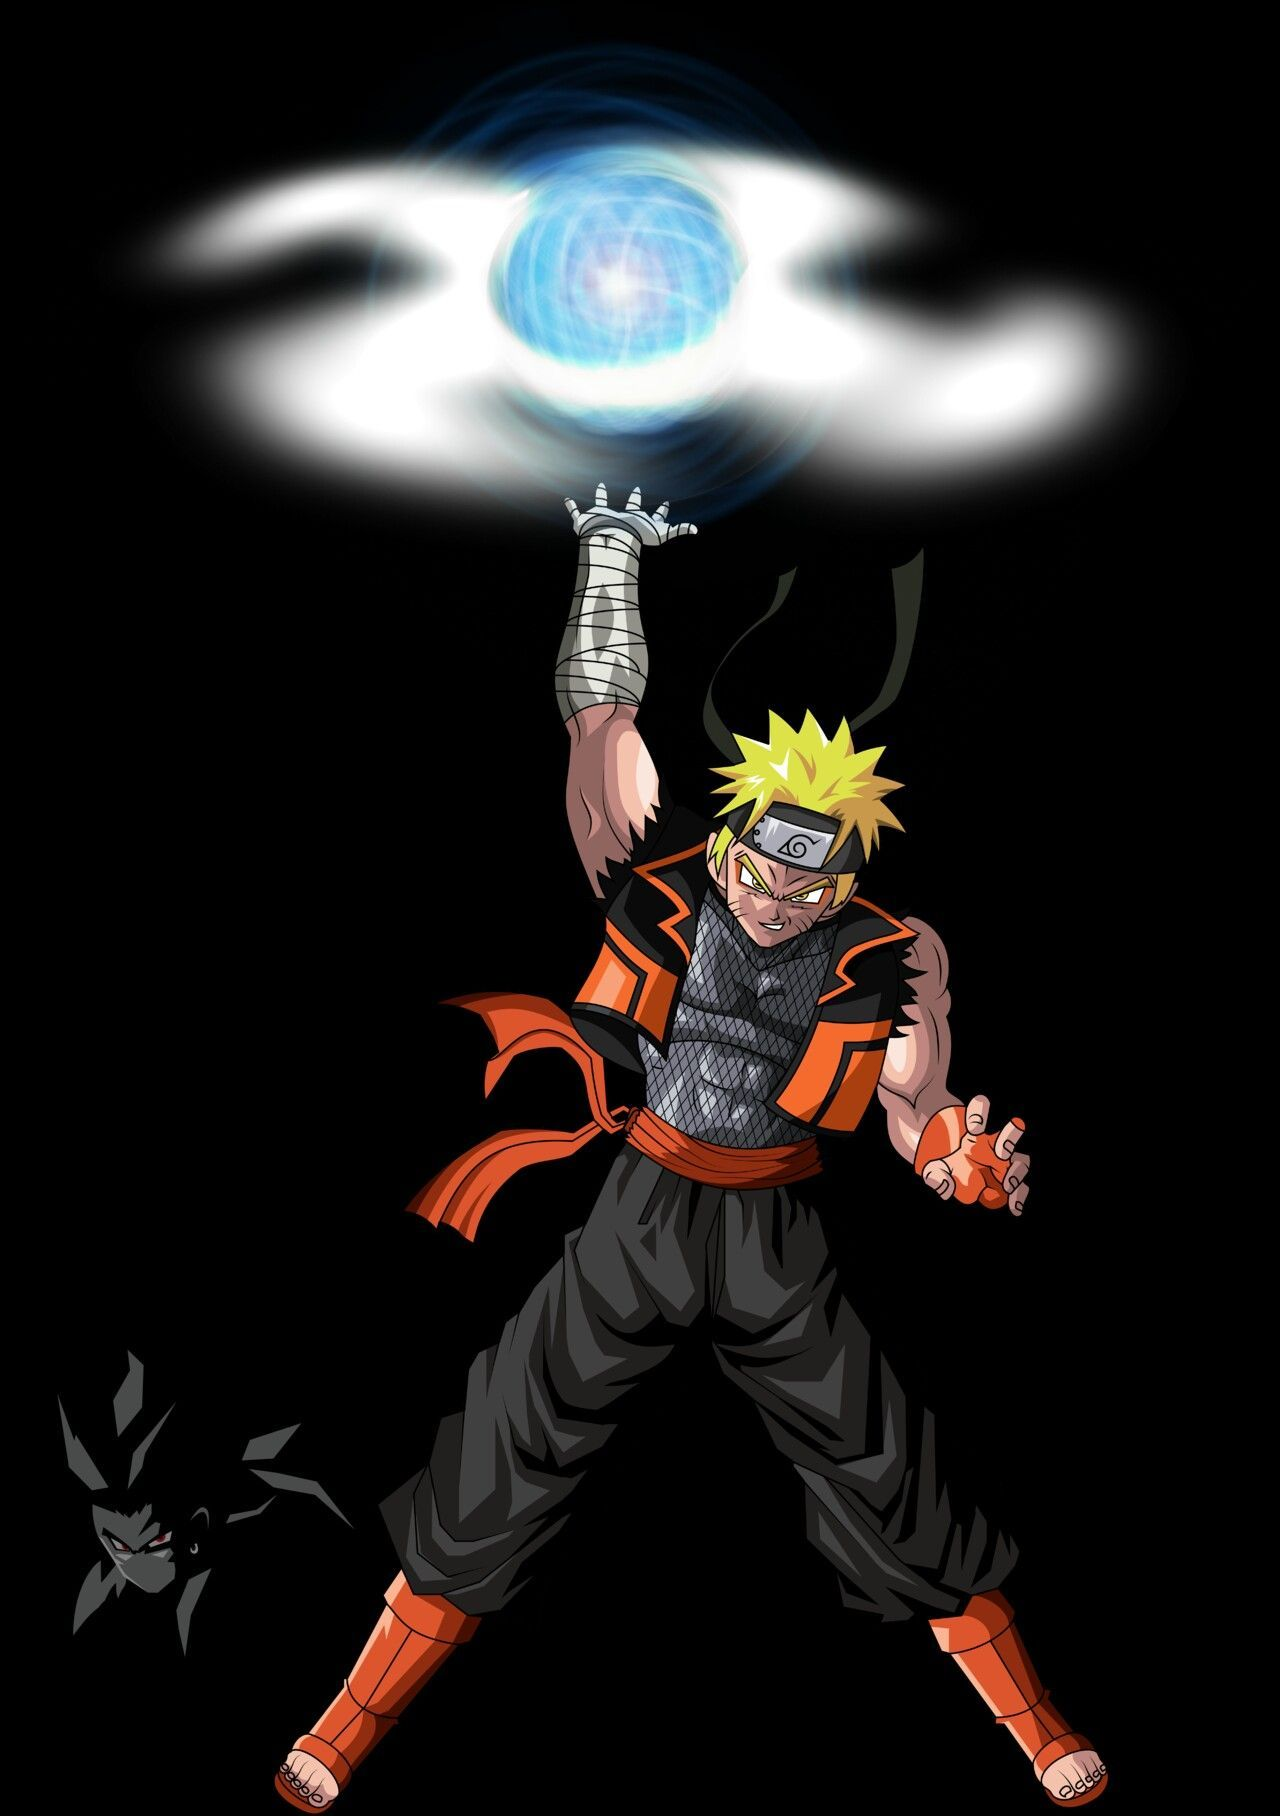 Unduh 1030+ Wallpaper Naruto Pinterest HD Terbaik